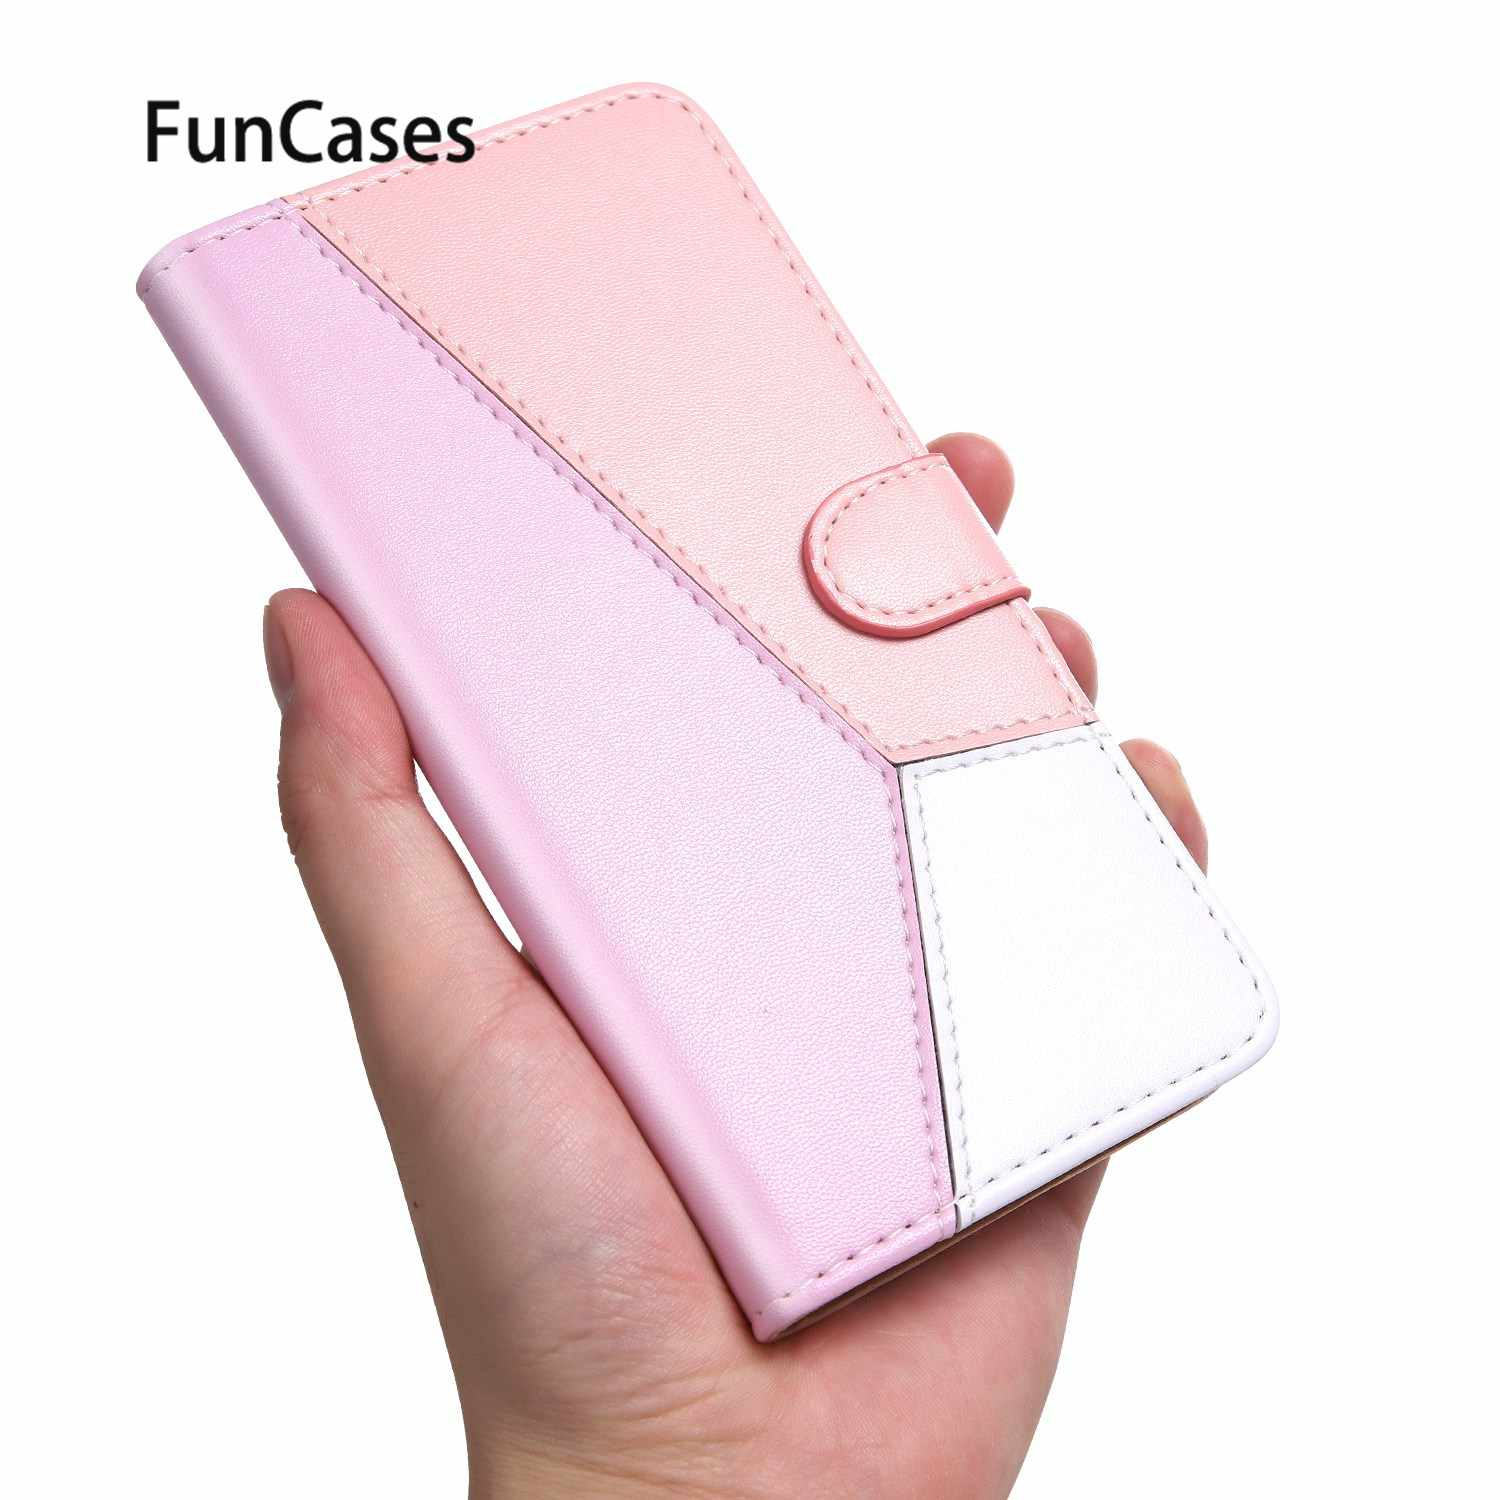 Covers Voor Huawei Honor 8X Capa Huawei Honor 9 Lite Genieten 9S 20i P Smart 2019 7S 9X 10i 7A 5.7 8A 10 Pro Plus 20 Flip Book Case